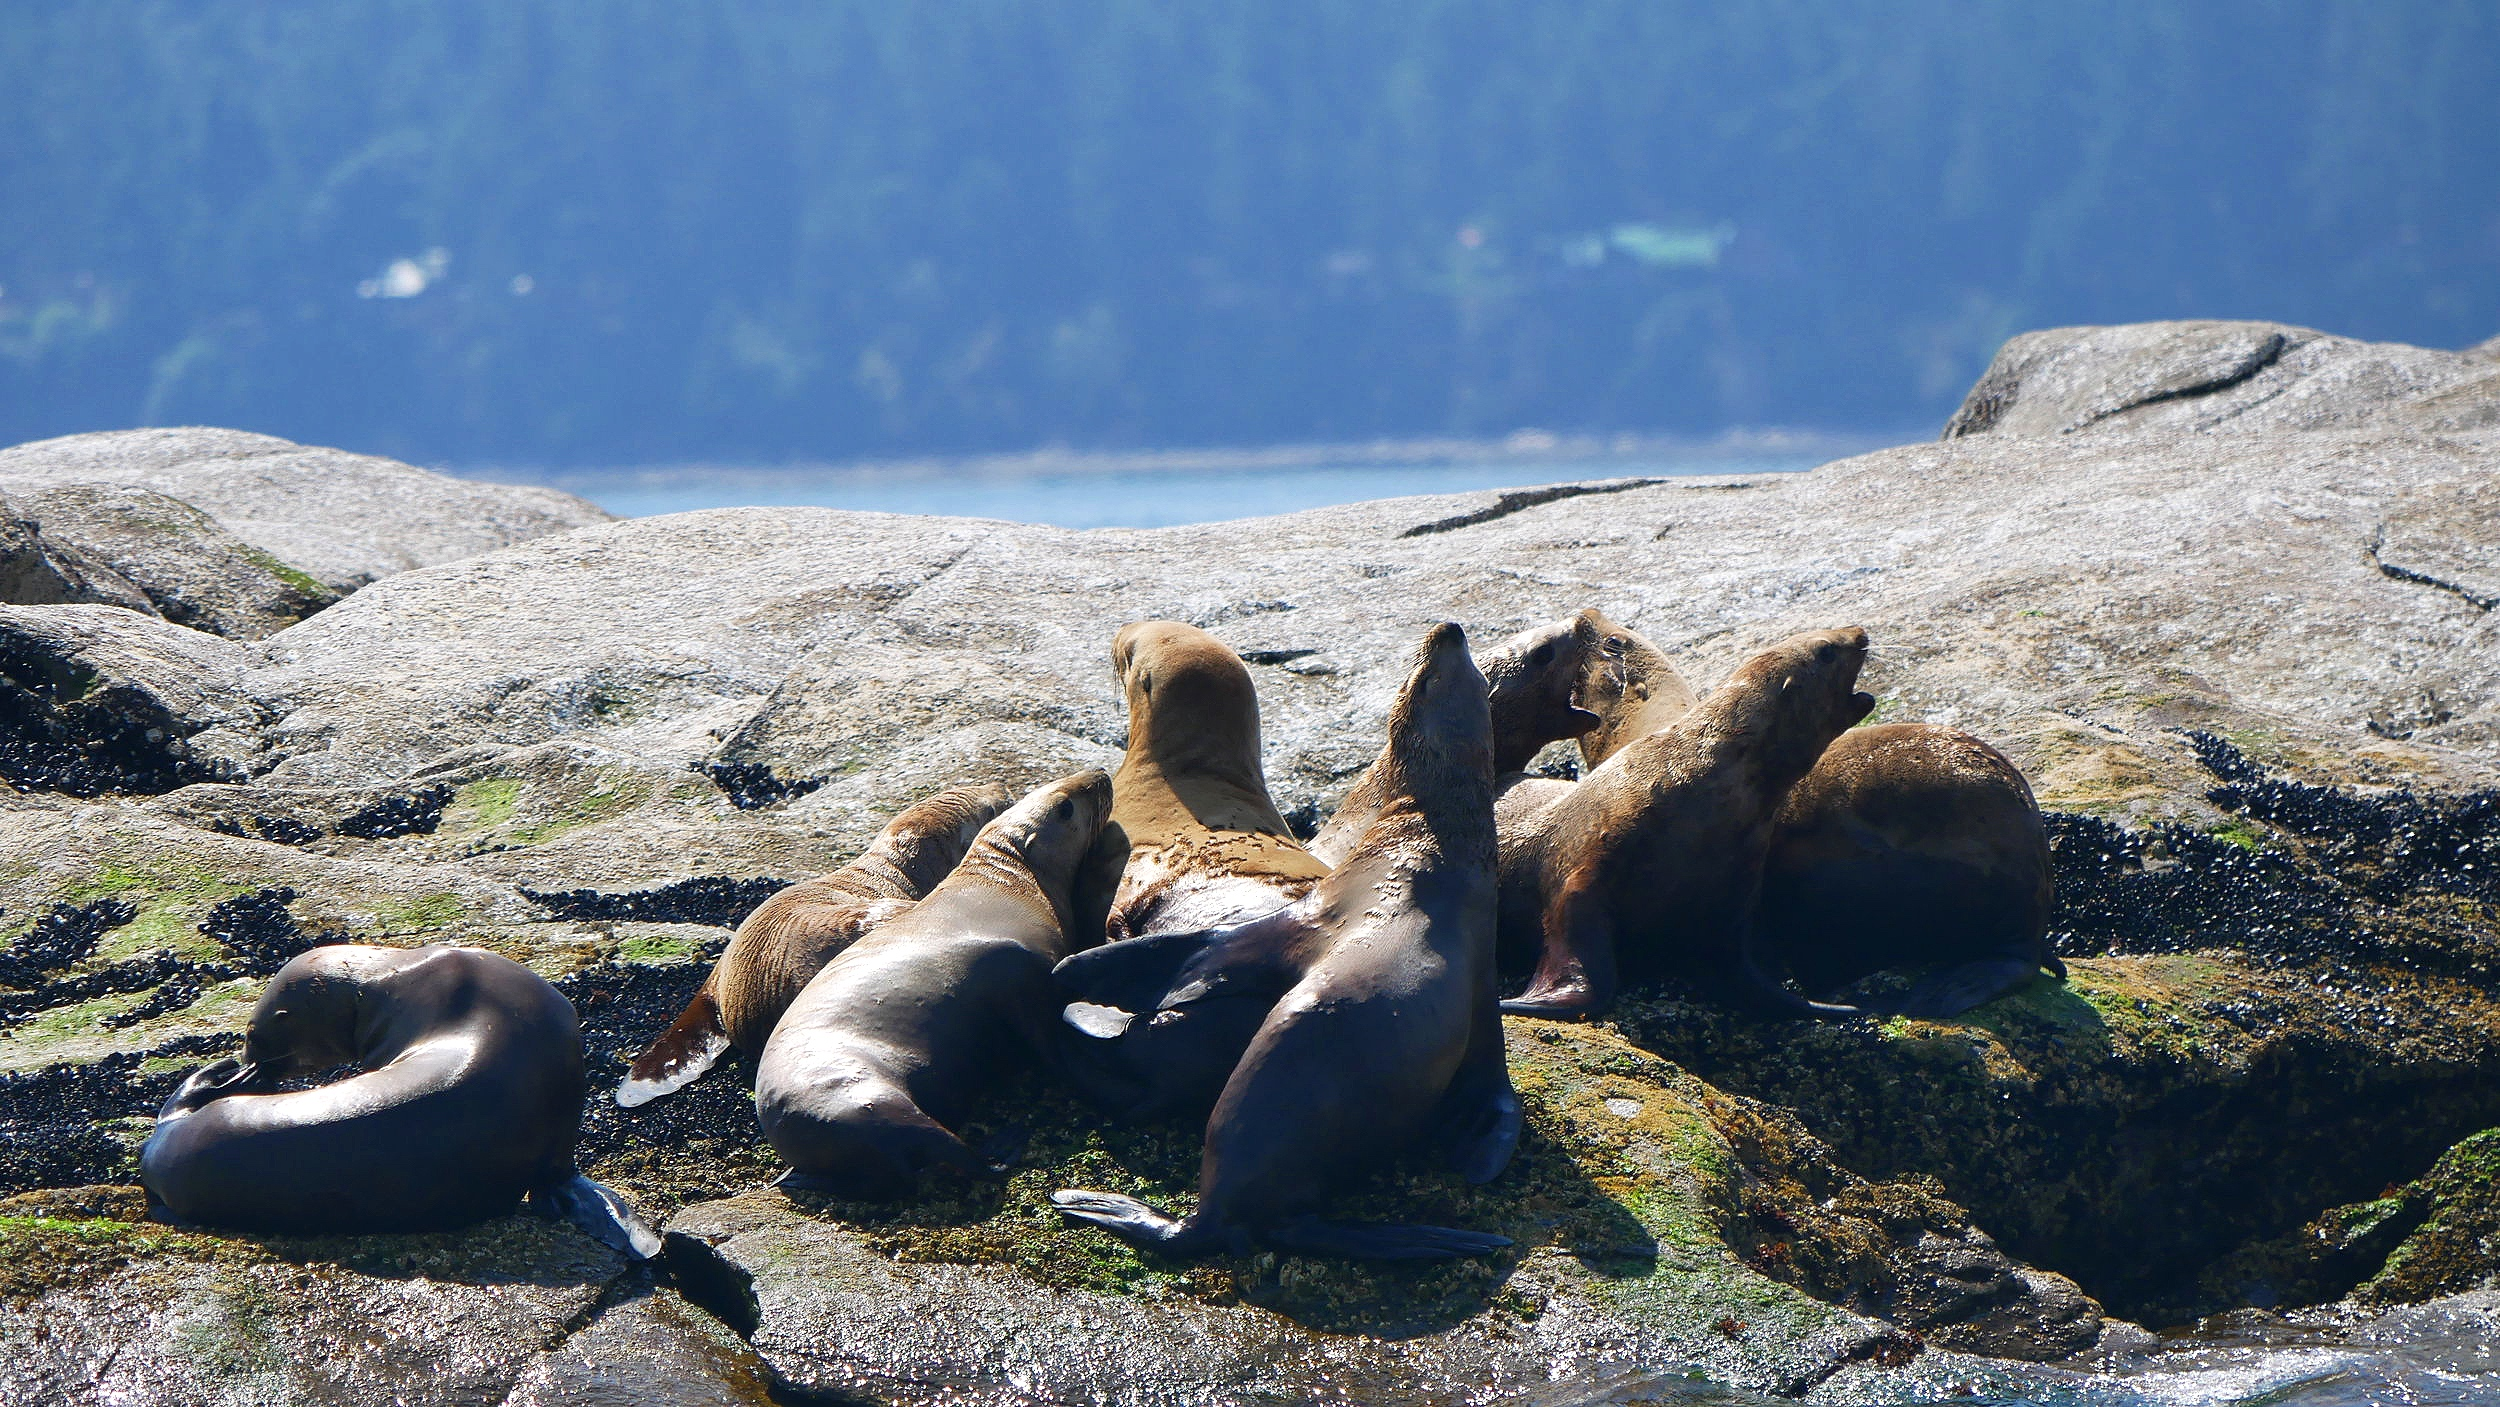 Steller Sea Lions on Entrance Island. Photo by Rebeka Pirker (10.30)